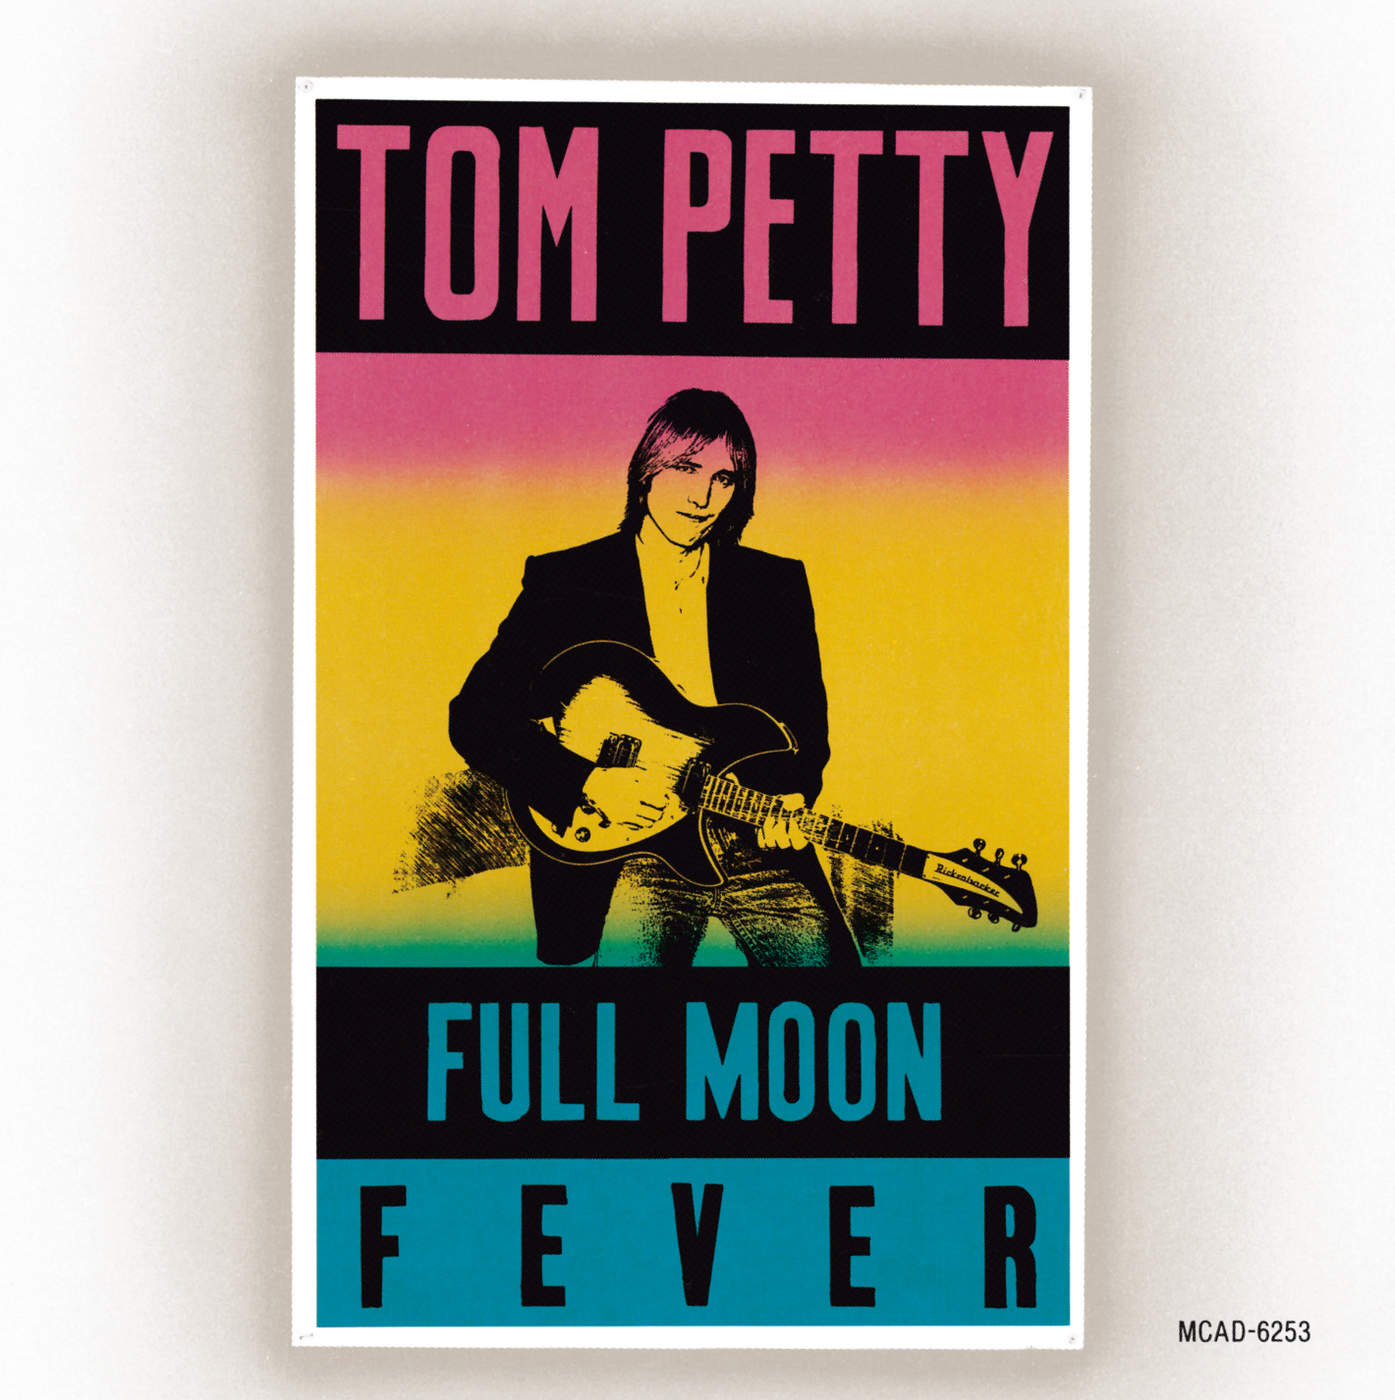 Free Fallin' by Tom Petty